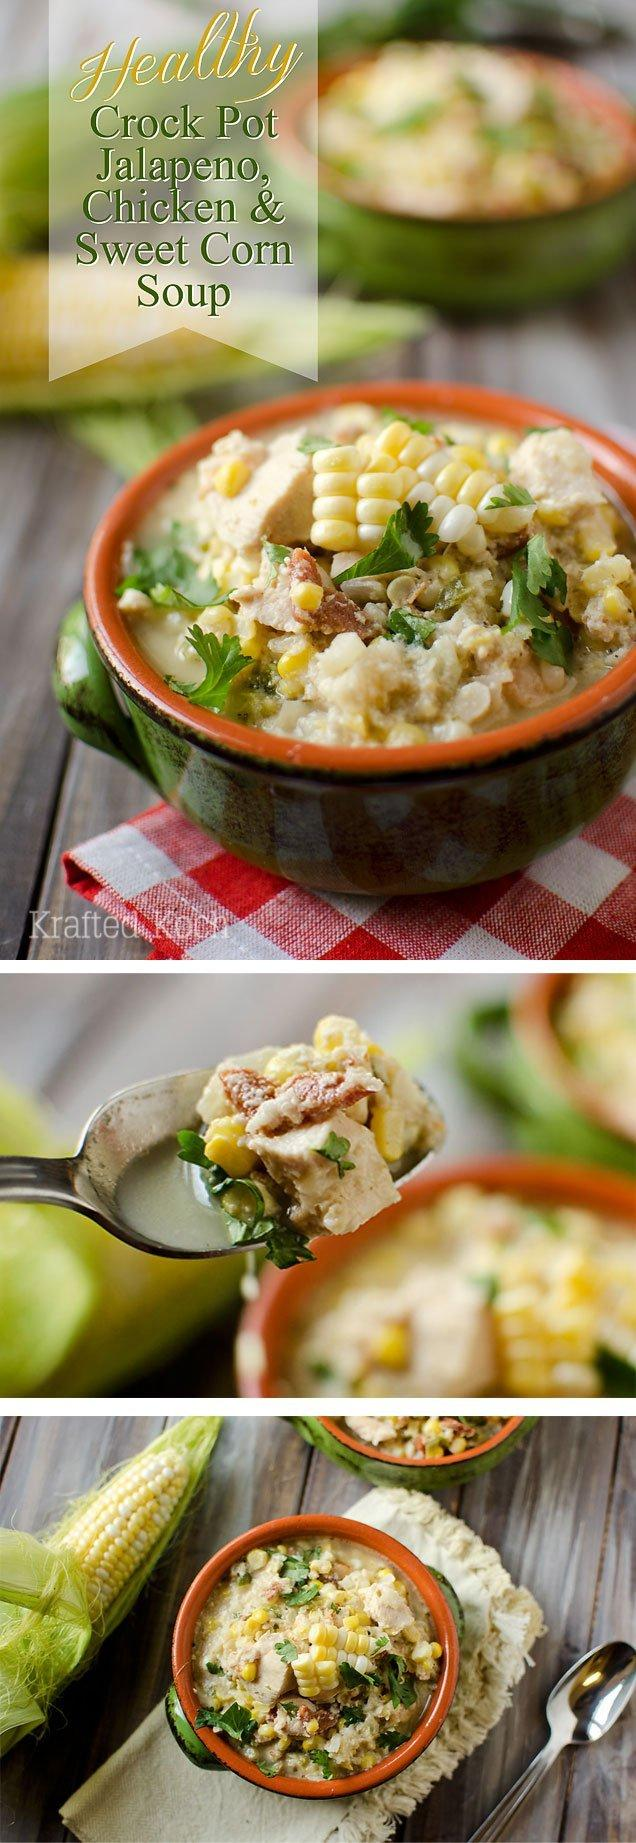 Healthy-Crock-Pot-Jalapeno-Chicken-Sweet-Corn-Soup-Krafted-Koch